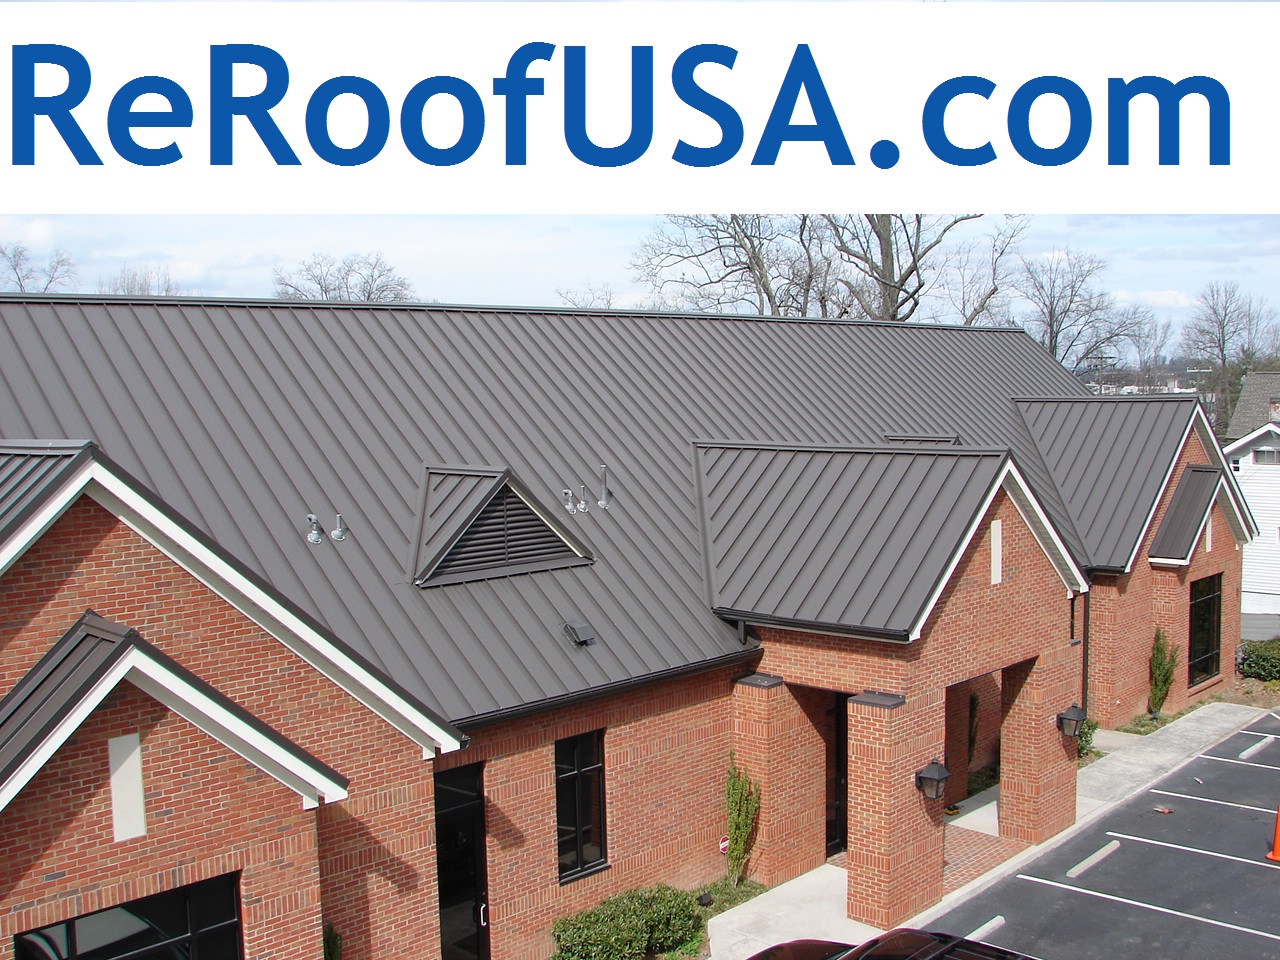 Great Metal Roofing Company In Columbia, SC Provides Installation And Contractor  Services To Complete Project At Extra Space Storage By ReRoof USA